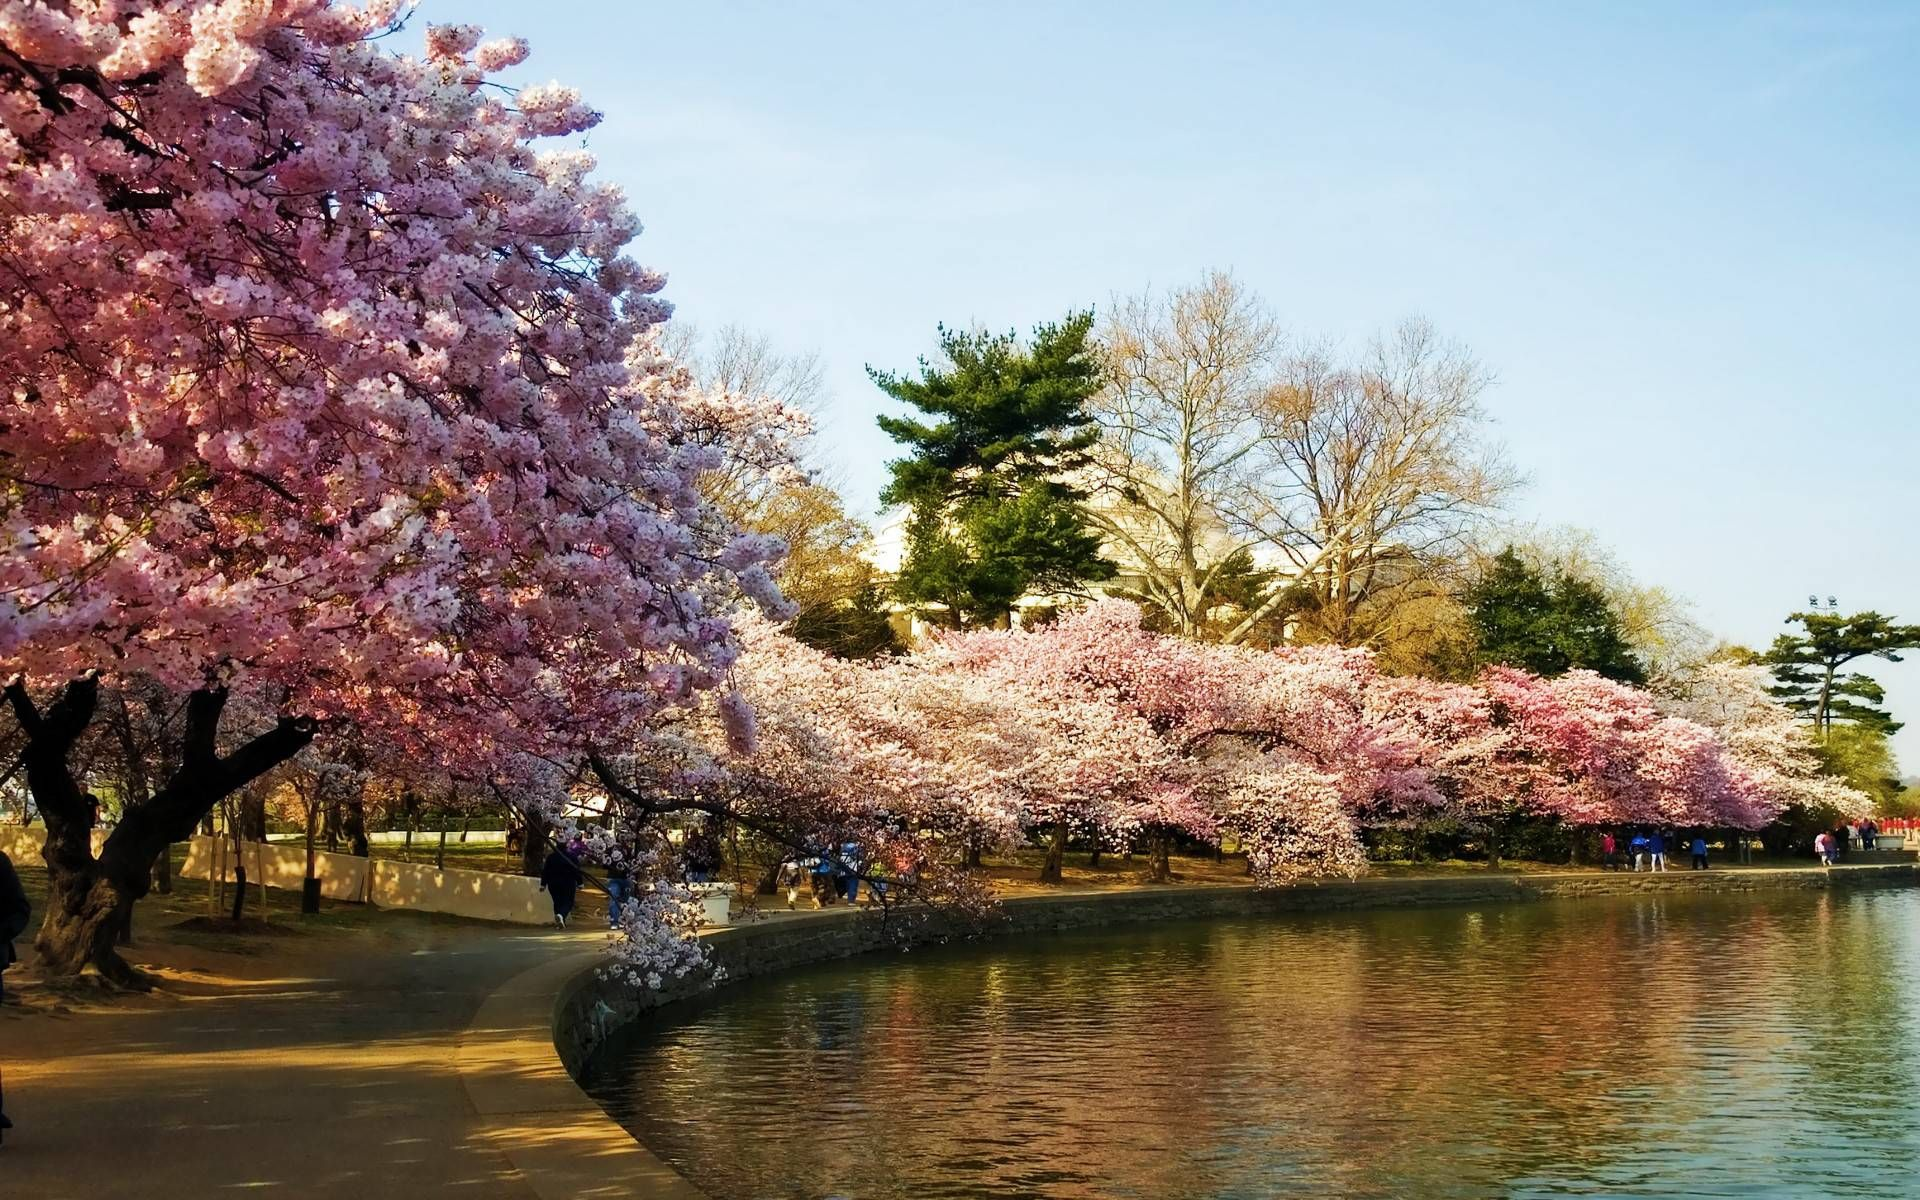 Pin by Mariana P on Spring Cherry blossom japan, Cherry